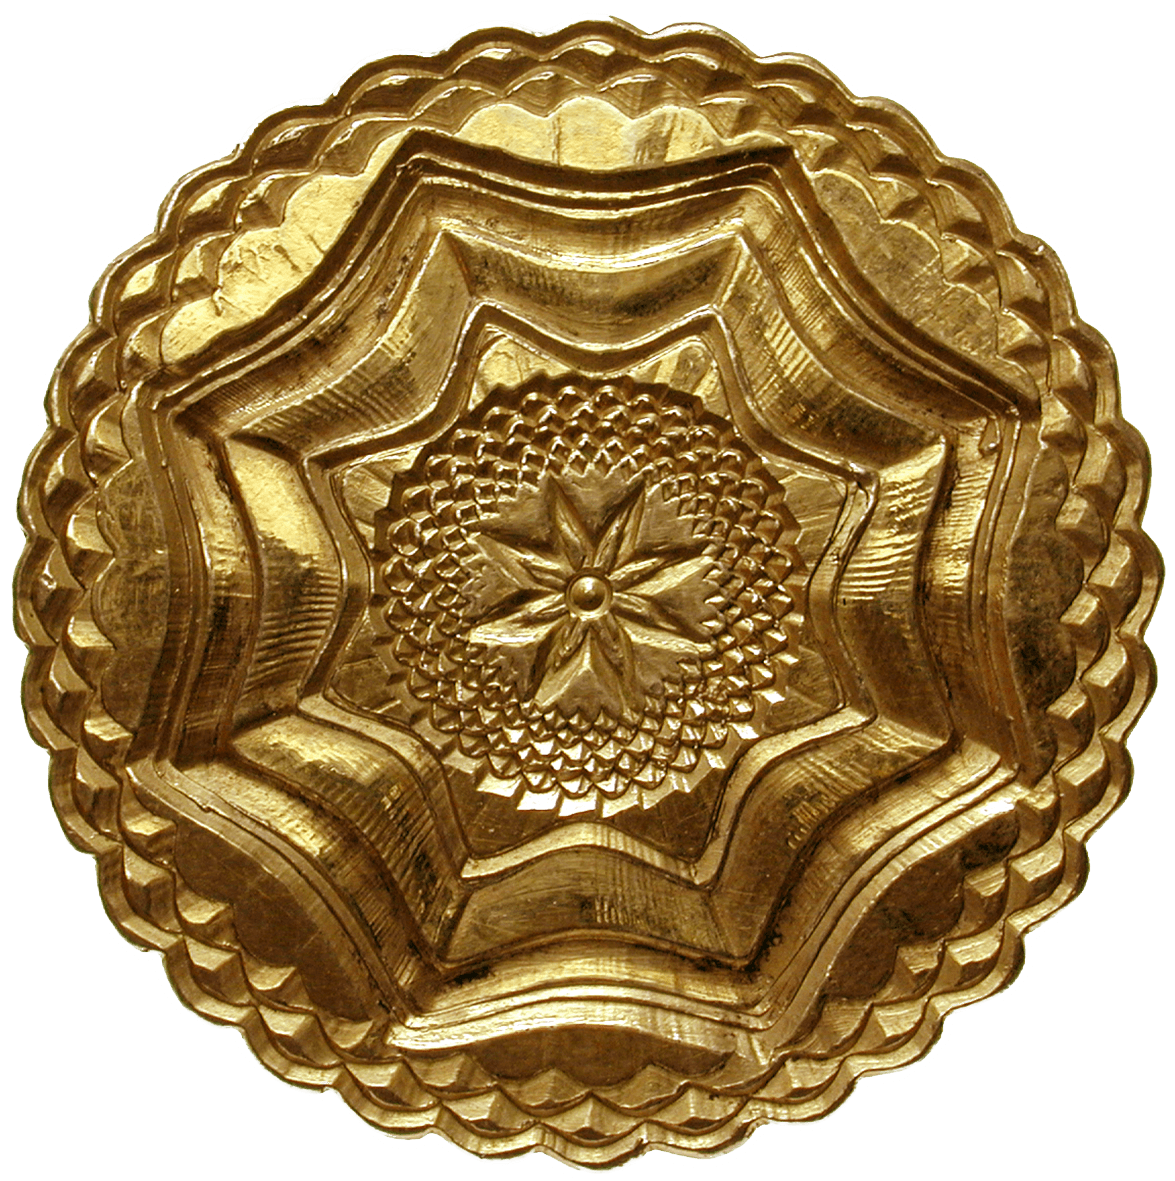 Zurich, Gold-Plated Silver Box for Keeping Coins or Medals (obverse)